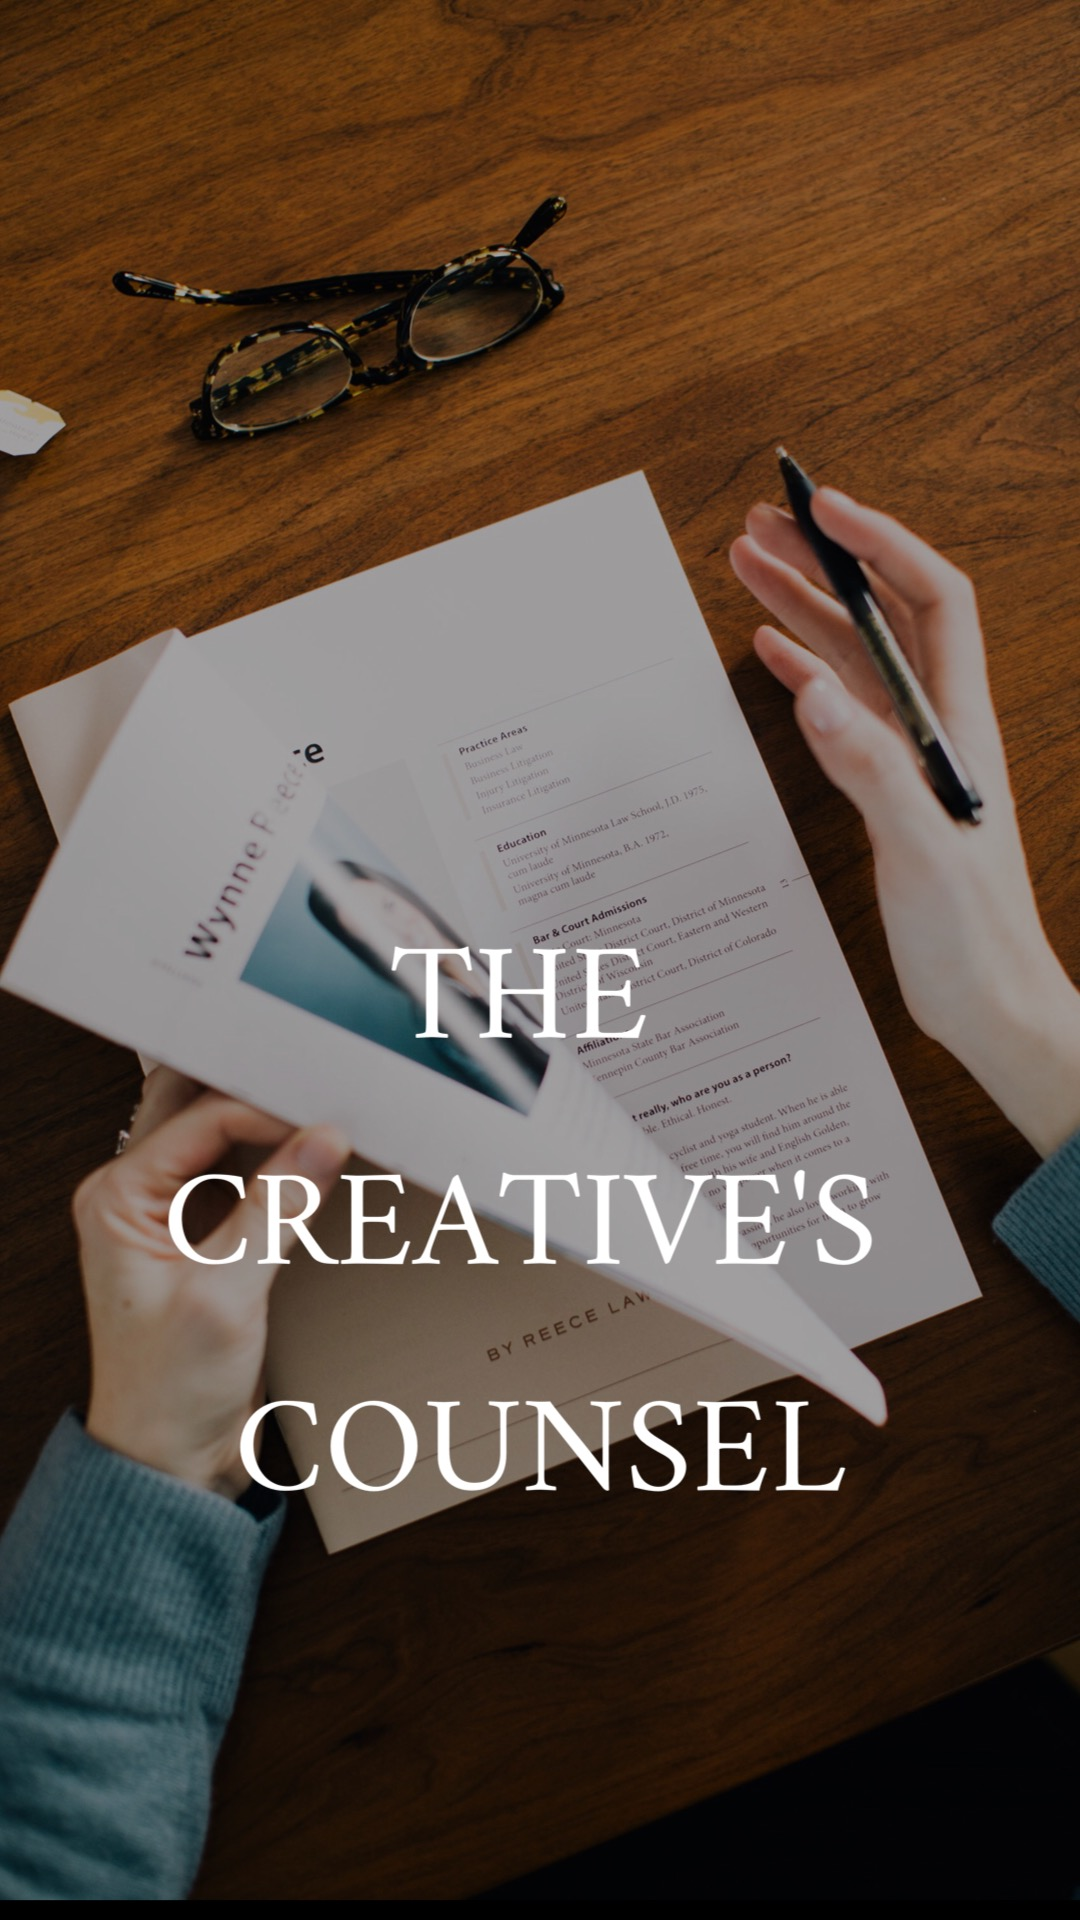 The Creative's Counsel